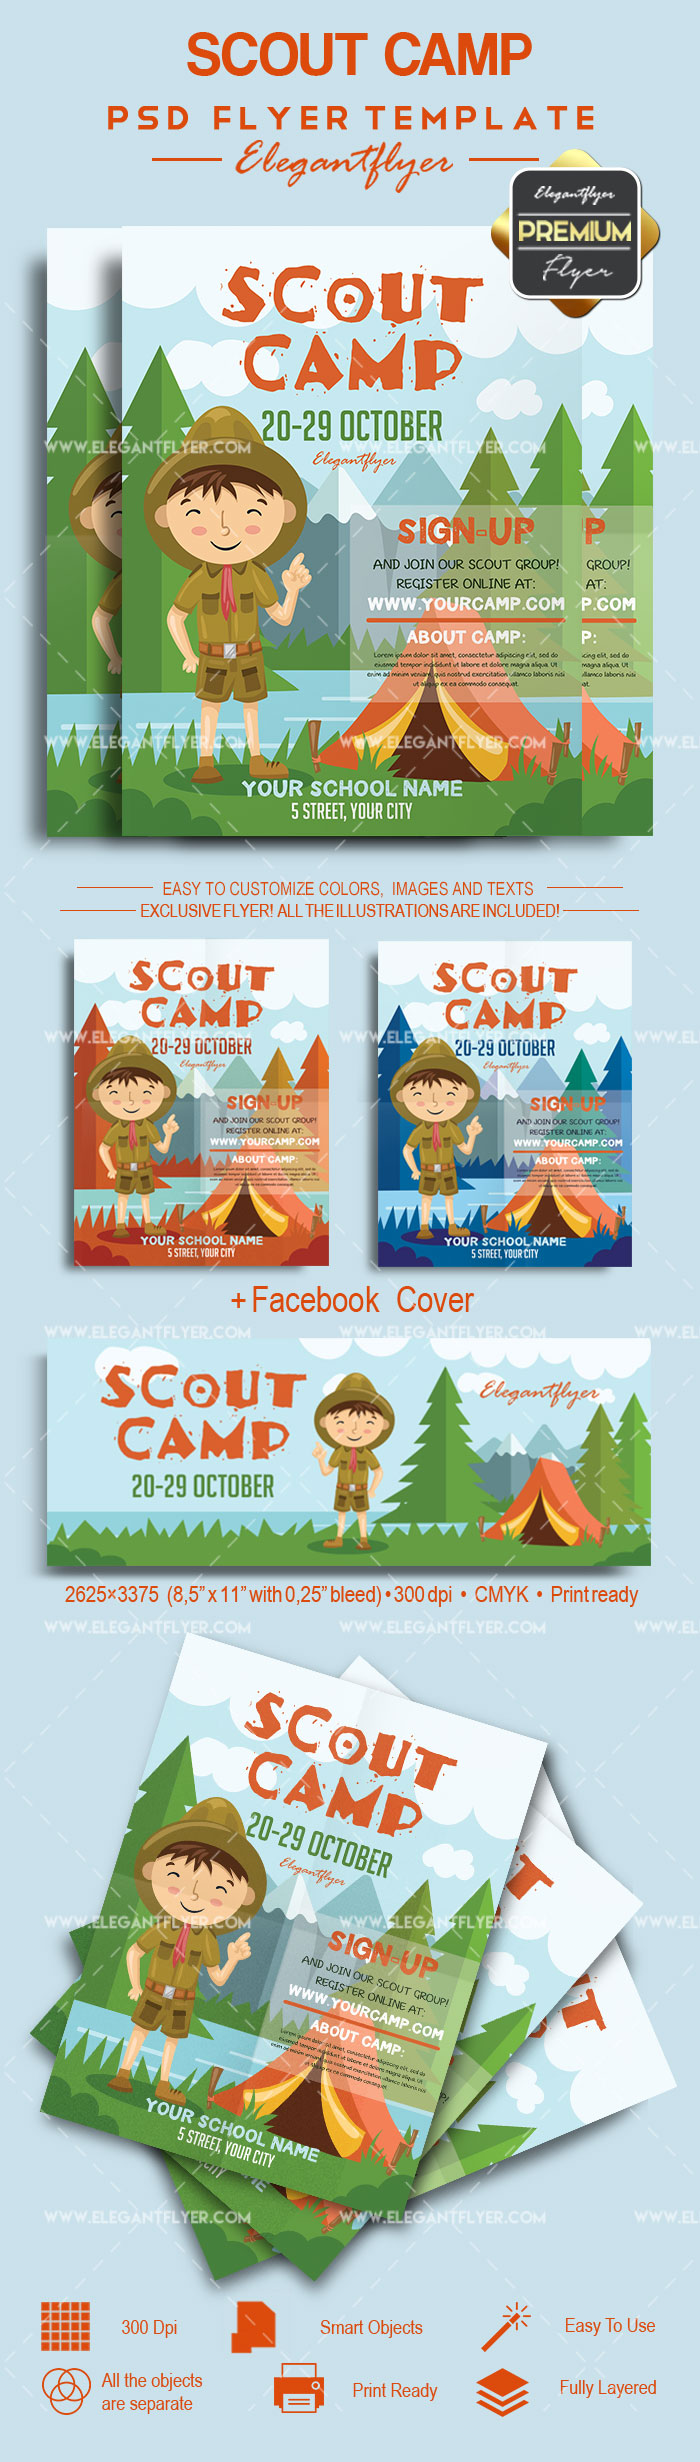 Scout Camp Flyer Template